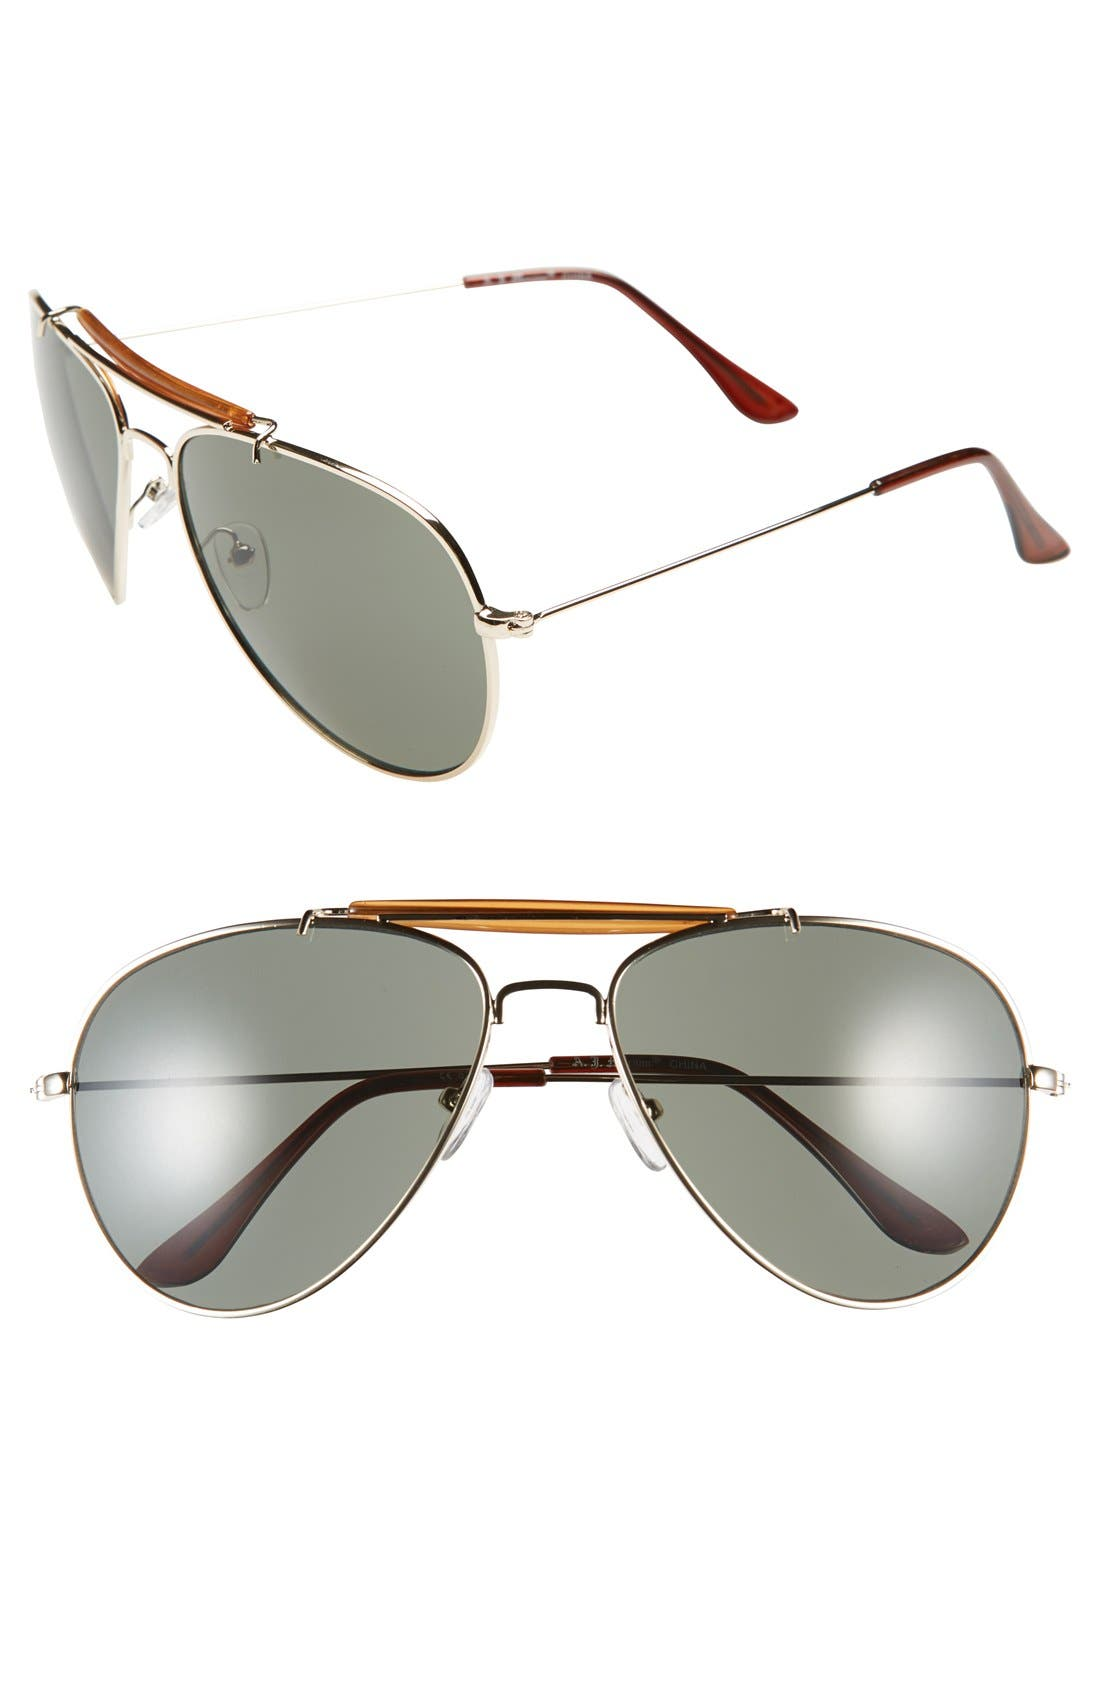 Main Image - A.J. Morgan 'Keith' 60mm Sunglasses